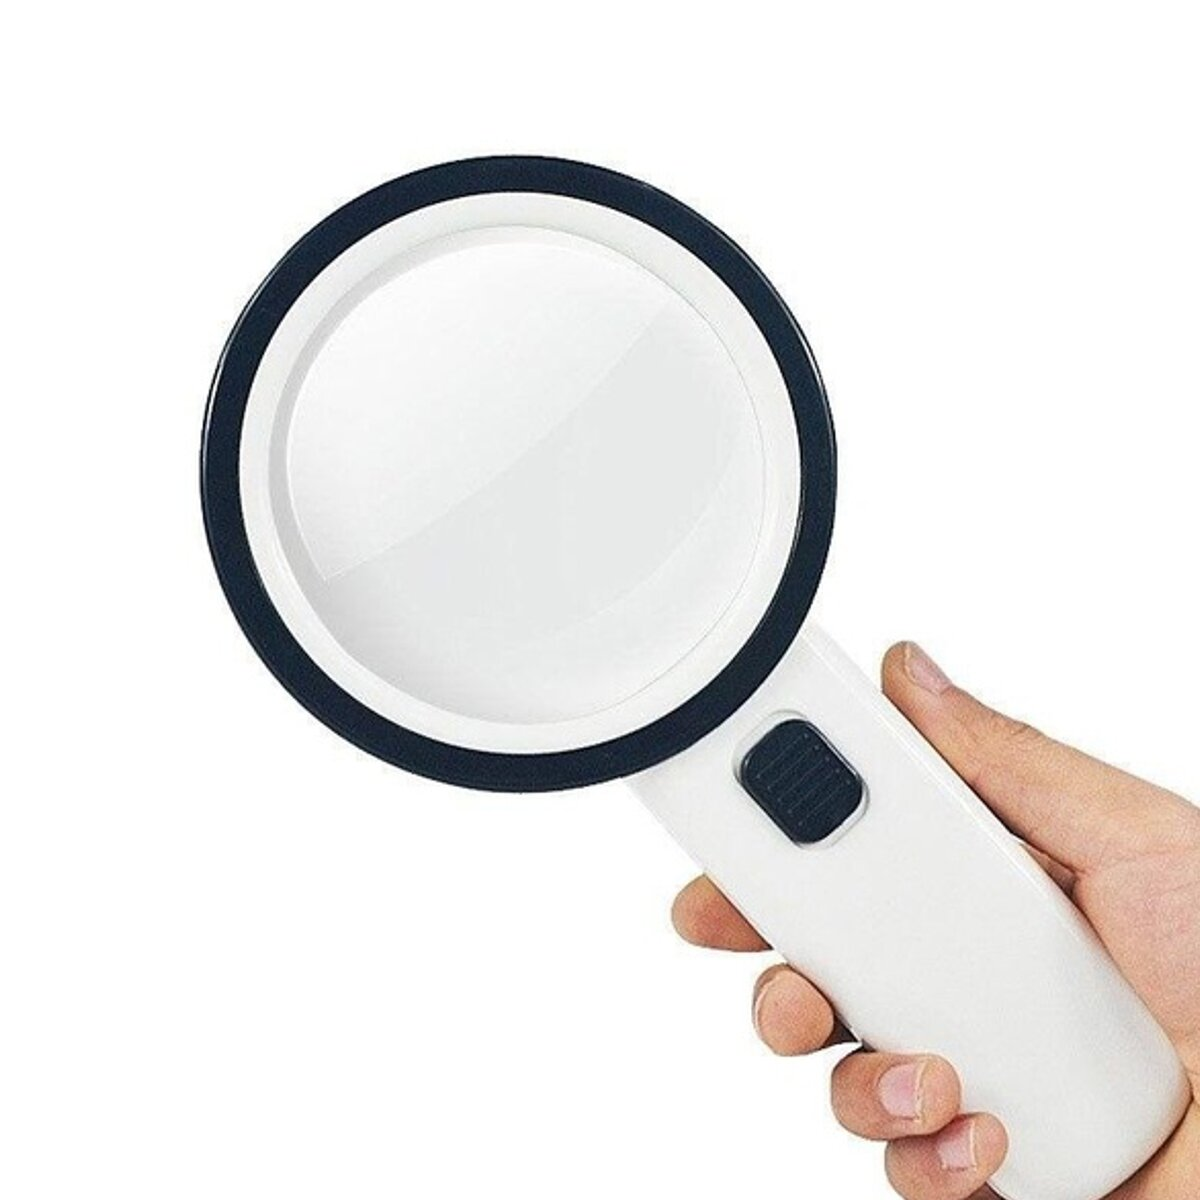 30X Illuminated Large Magnifier Handheld 12 LED Lighted Magnifying Glass for Seniors Reading Soldering Jewelry Exploring